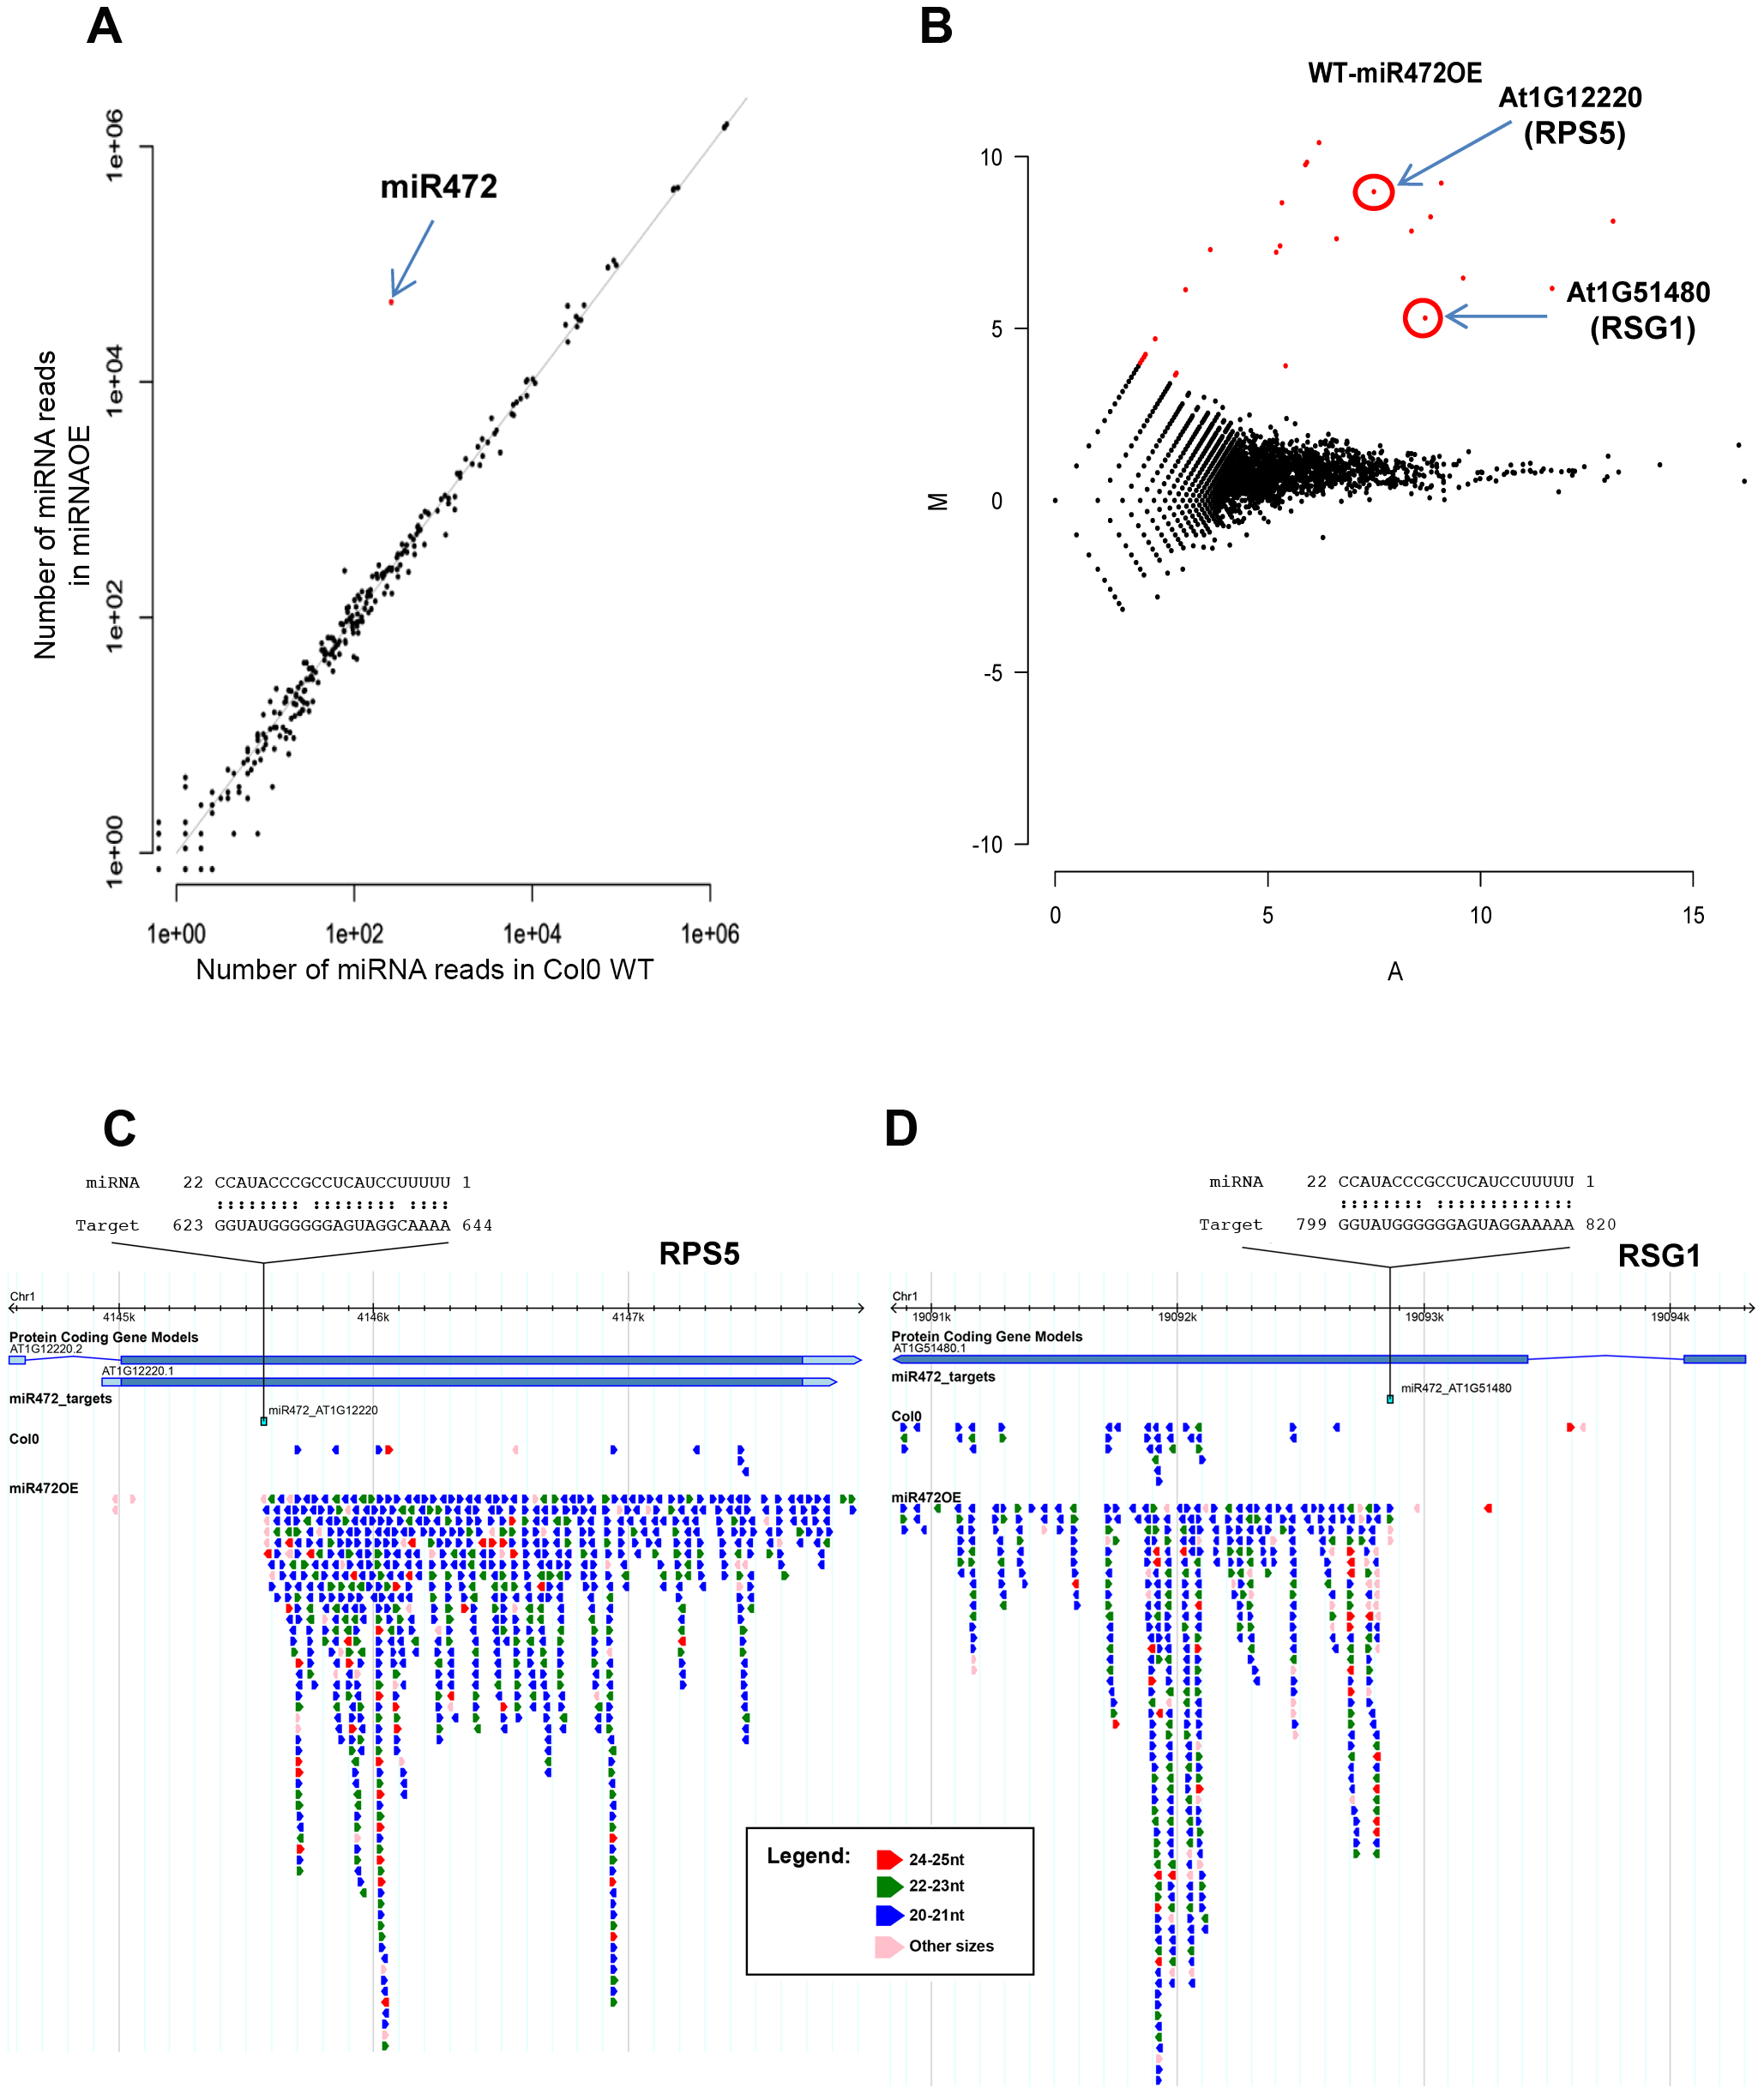 Overexpression of miR472 drastically enhances the accumulation of secondary siRNAs at multiple CNL transcripts.